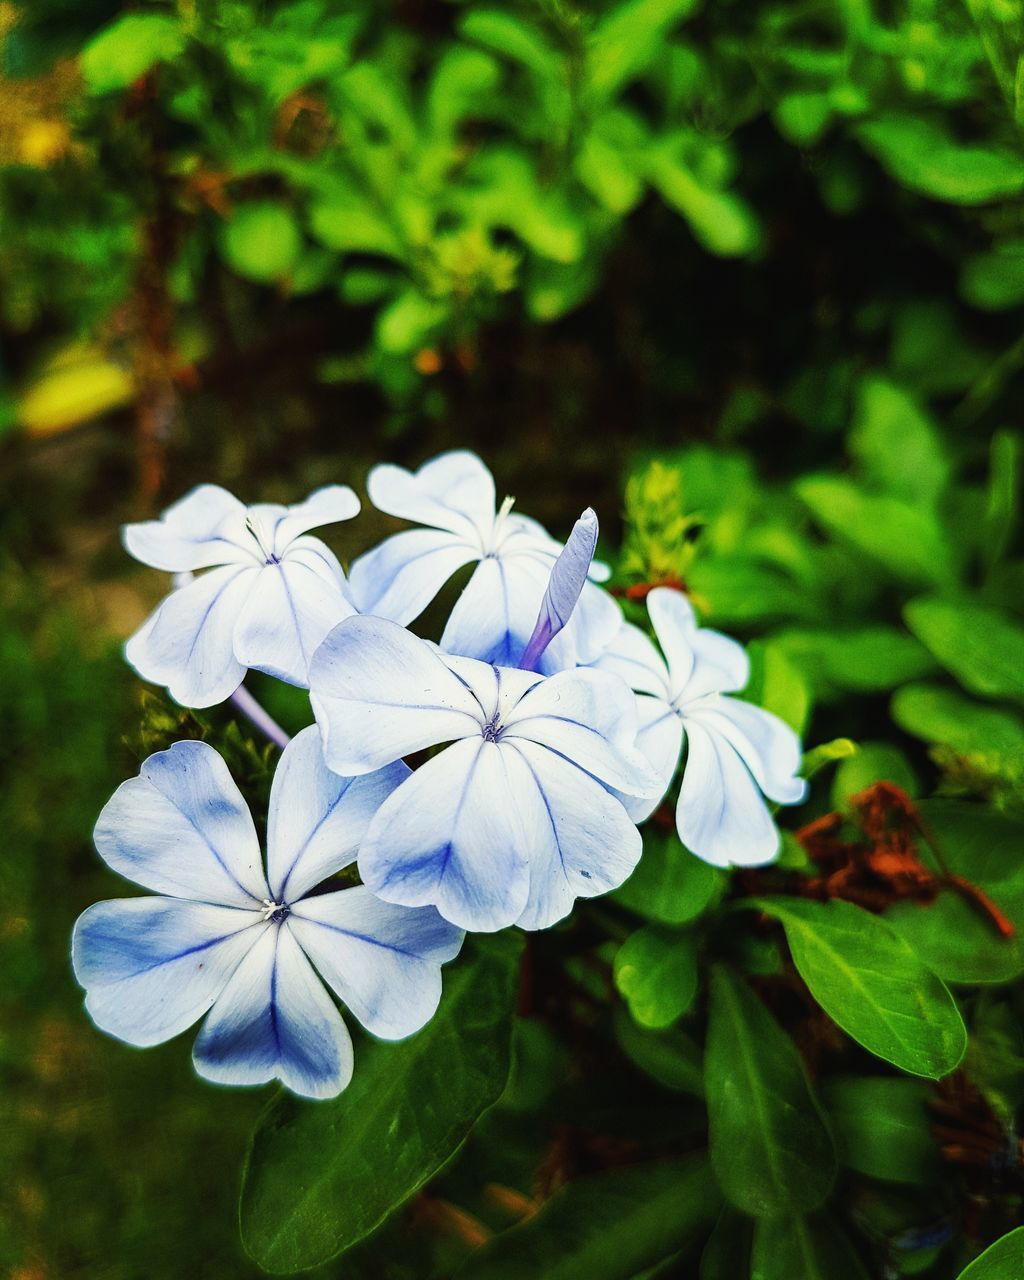 flower, beauty in nature, nature, petal, growth, fragility, flower head, white color, plant, freshness, day, green color, focus on foreground, blooming, outdoors, leaf, no people, close-up, periwinkle